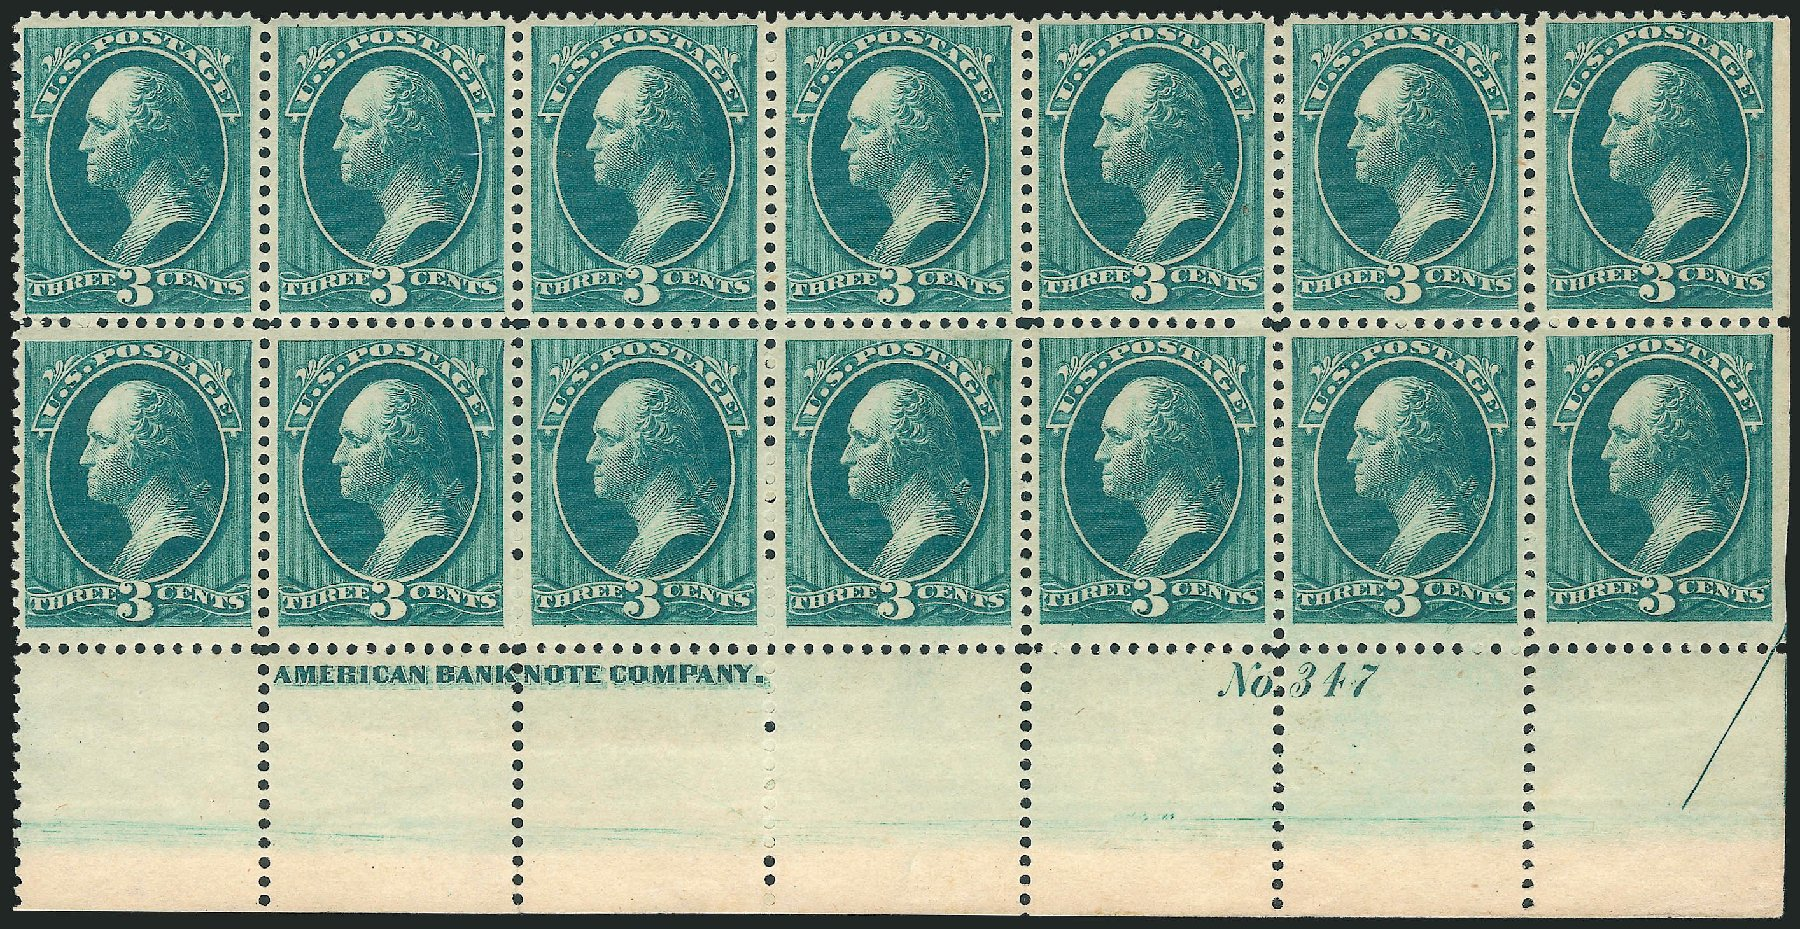 Value of US Stamps Scott Catalogue 184: 1879 3c Washington. Robert Siegel Auction Galleries, Apr 2015, Sale 1096, Lot 330